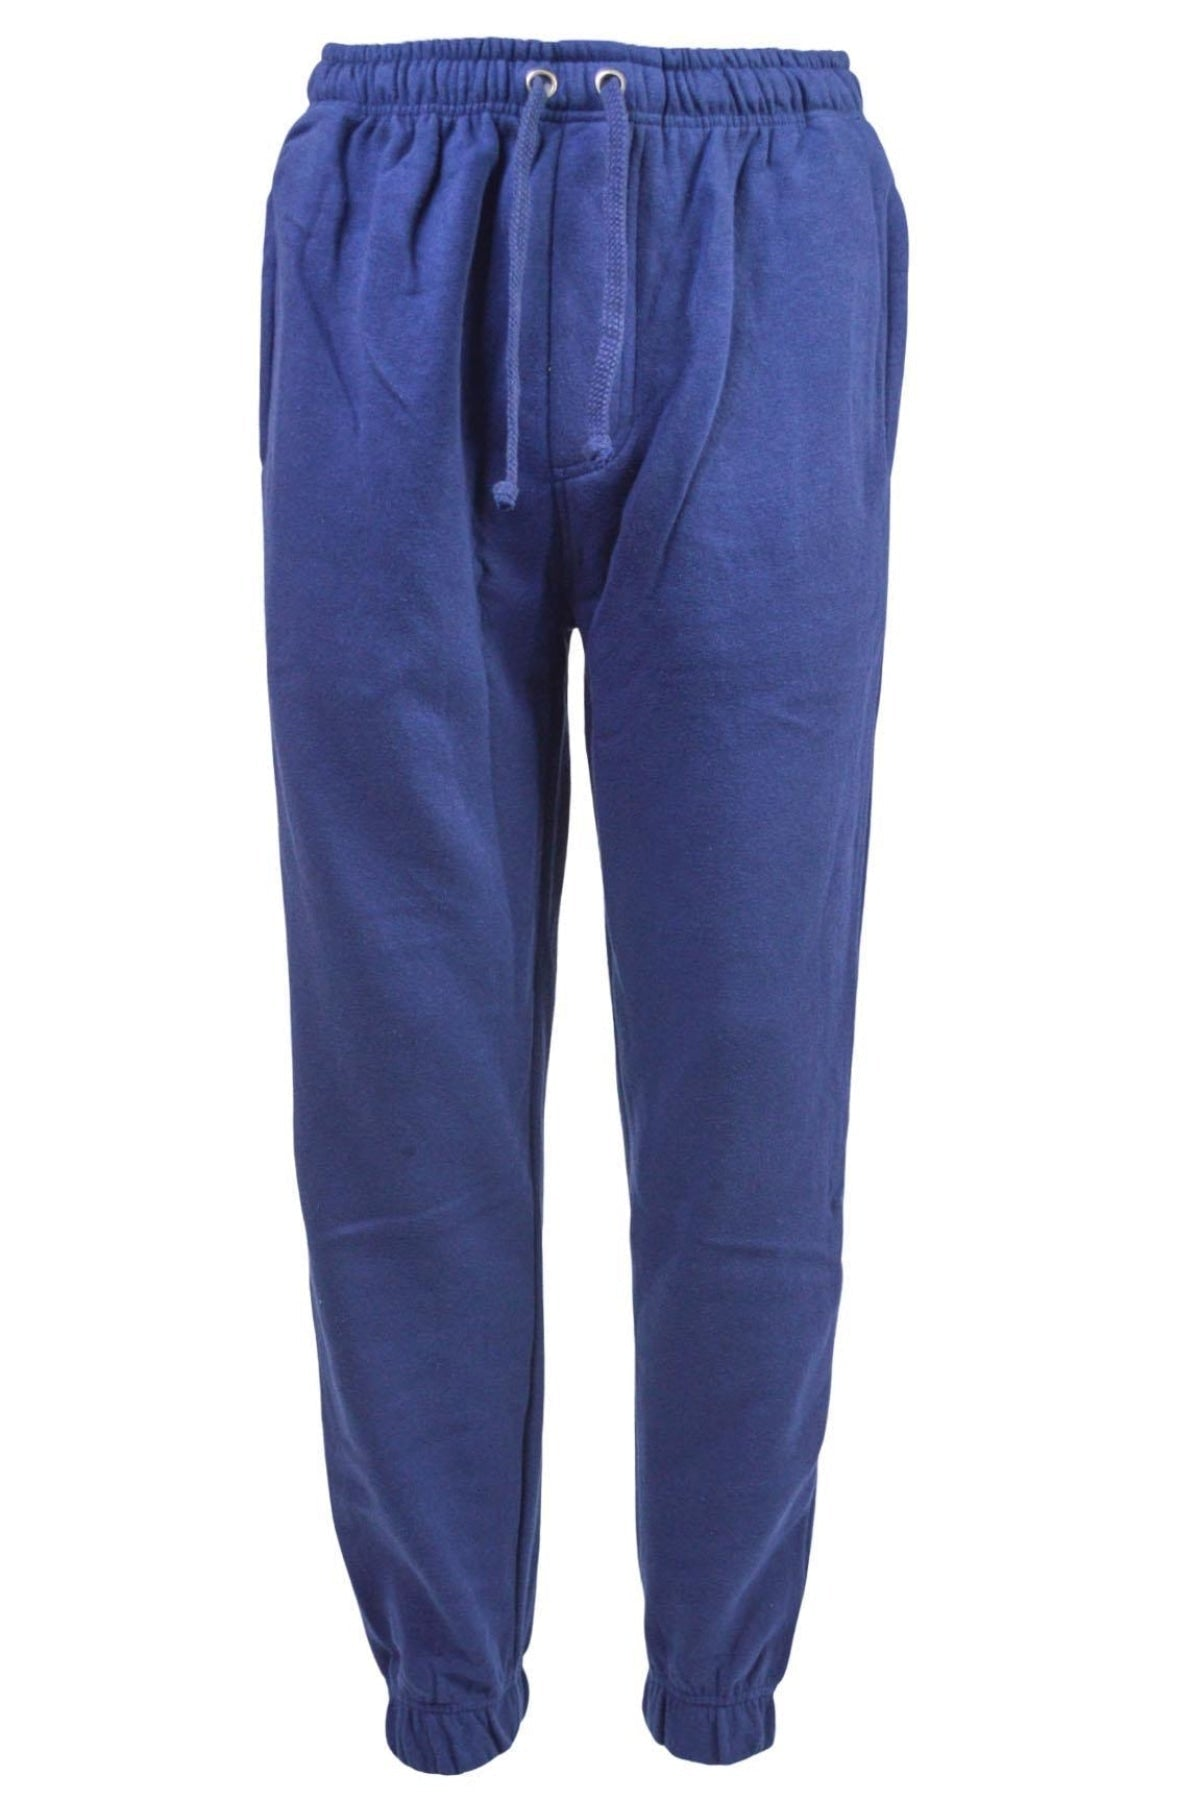 New Look Mens Joggers Sweat Pants | S / Blue Secret Label